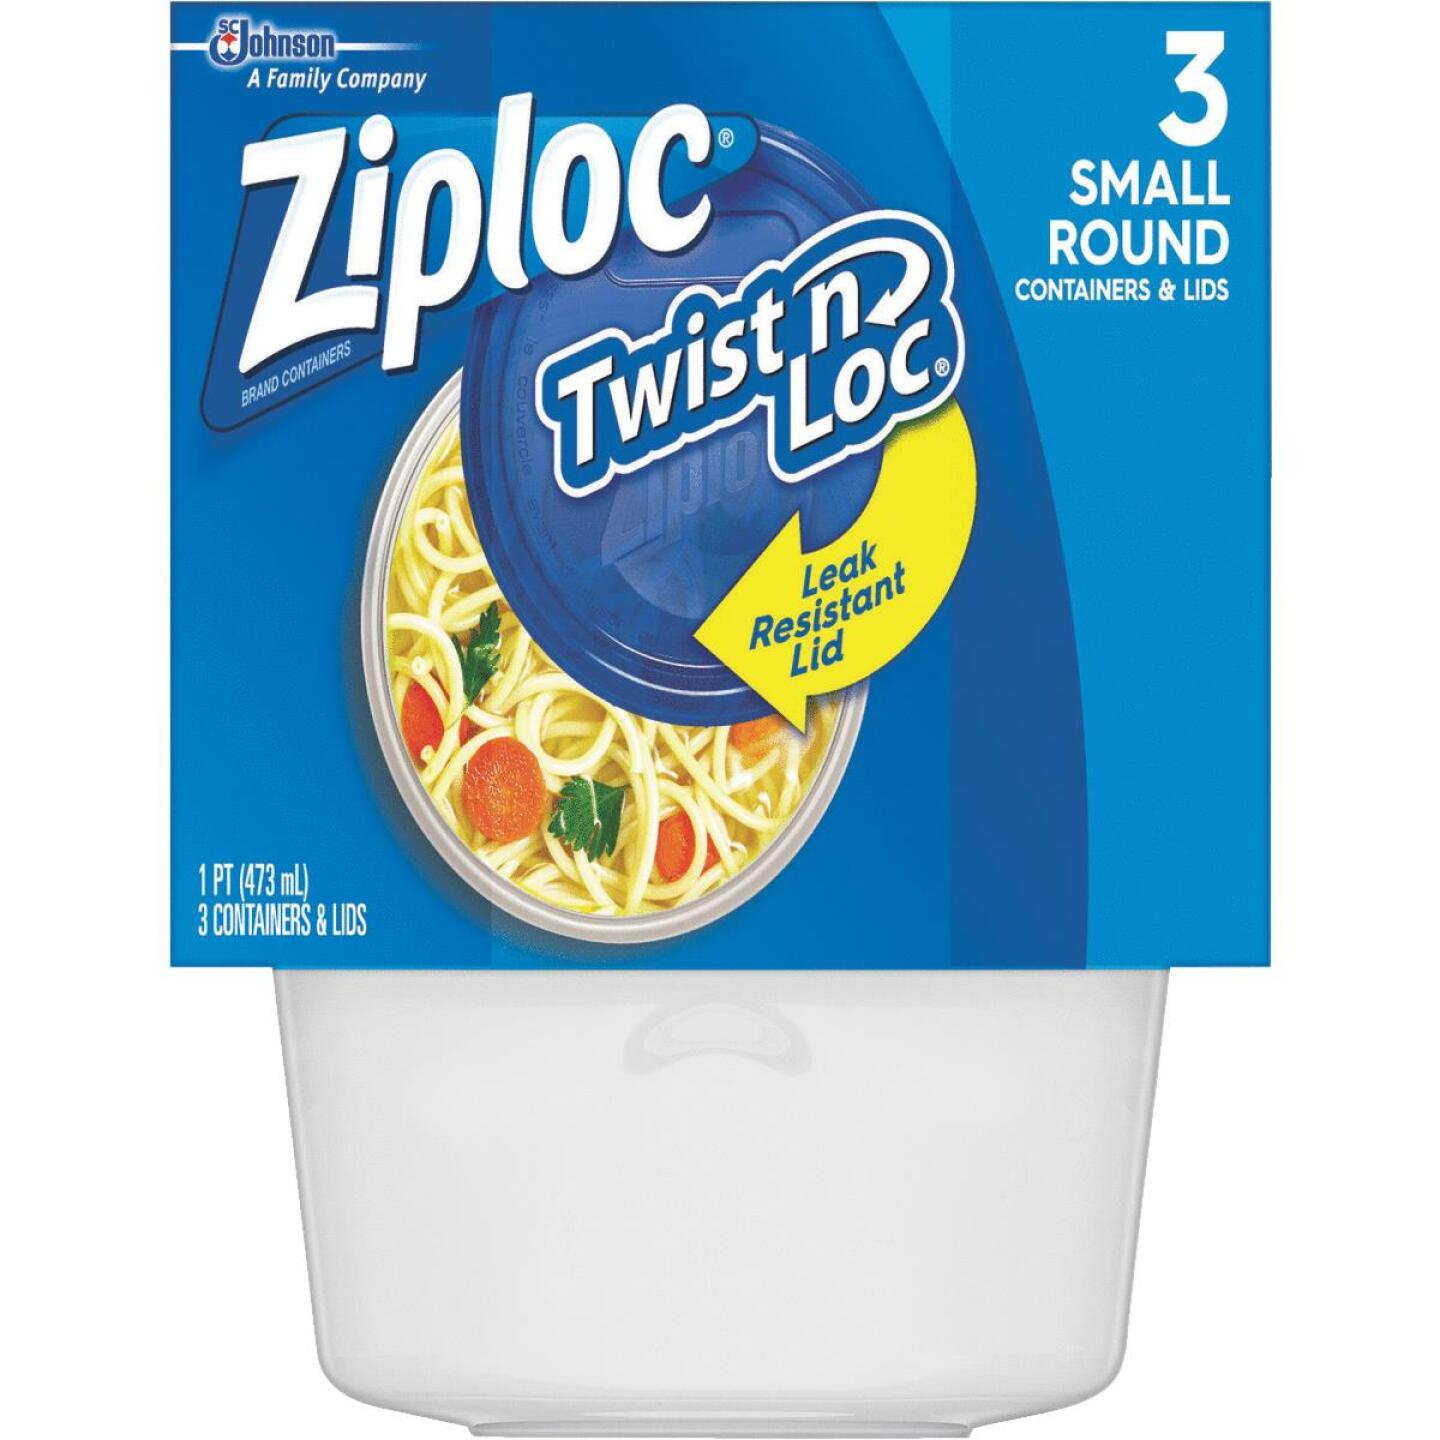 Ziploc Twist 'n Loc 1 Pt. Clear Round Food Storage Container with Lids (3-Pack) Image 1